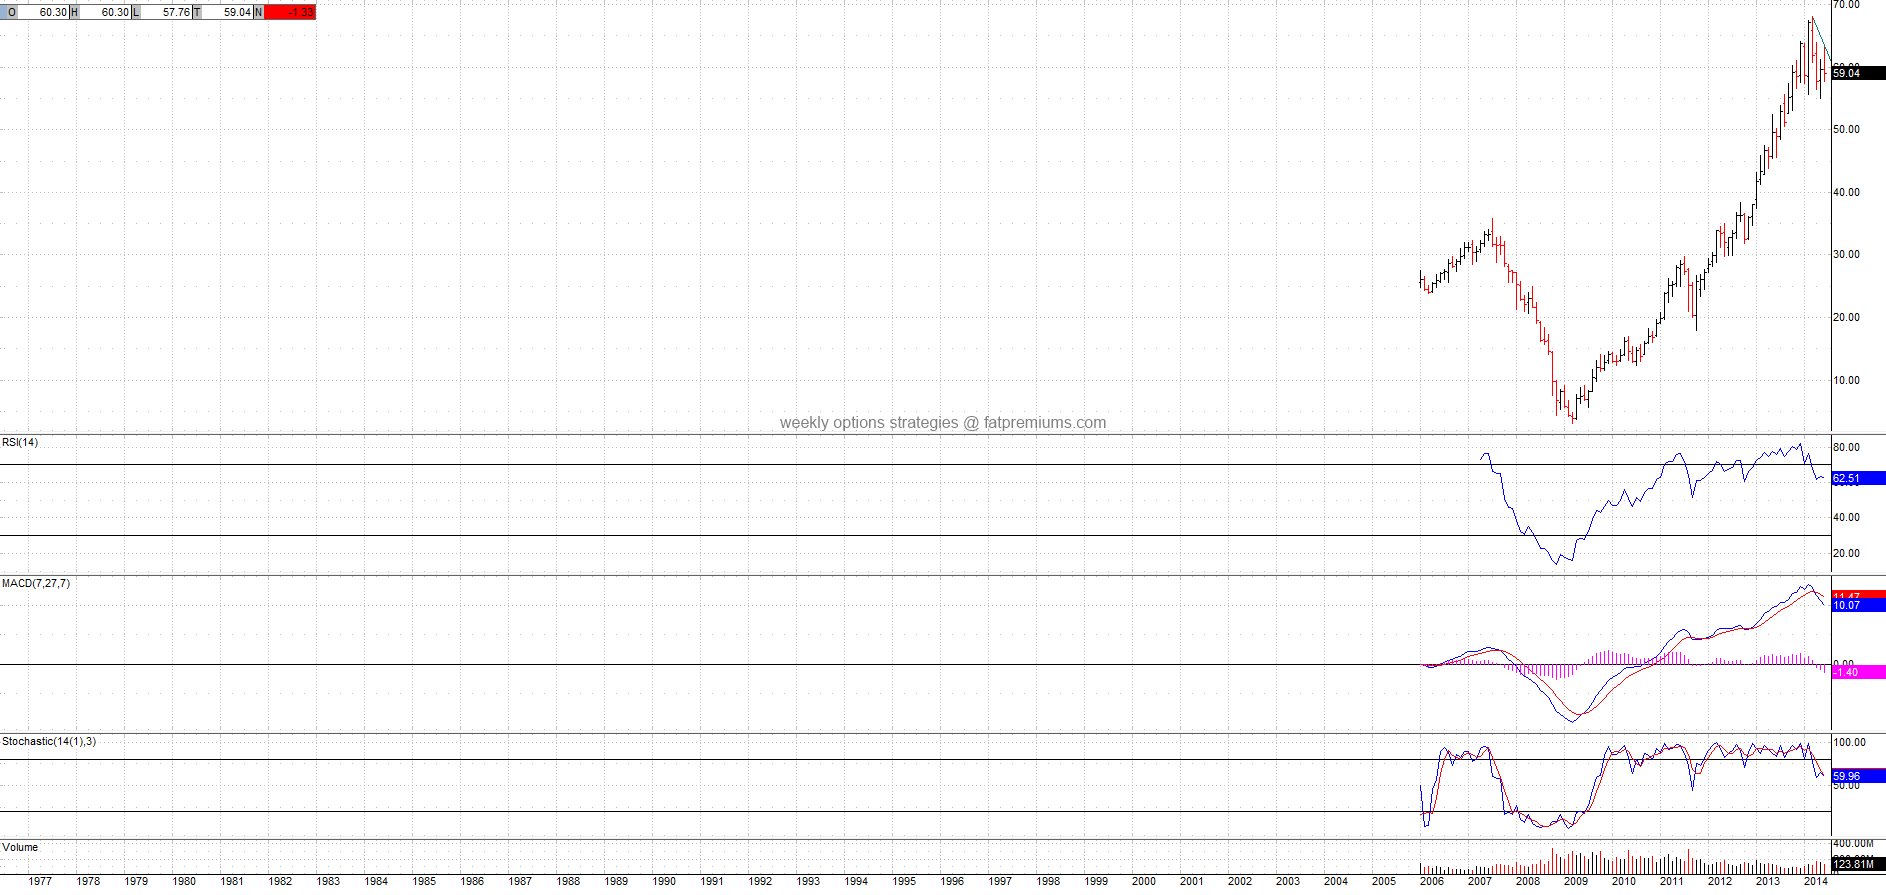 Cbs Corporation (NYSE:CBS) Monthly Chart (2014-06-20) Bearish